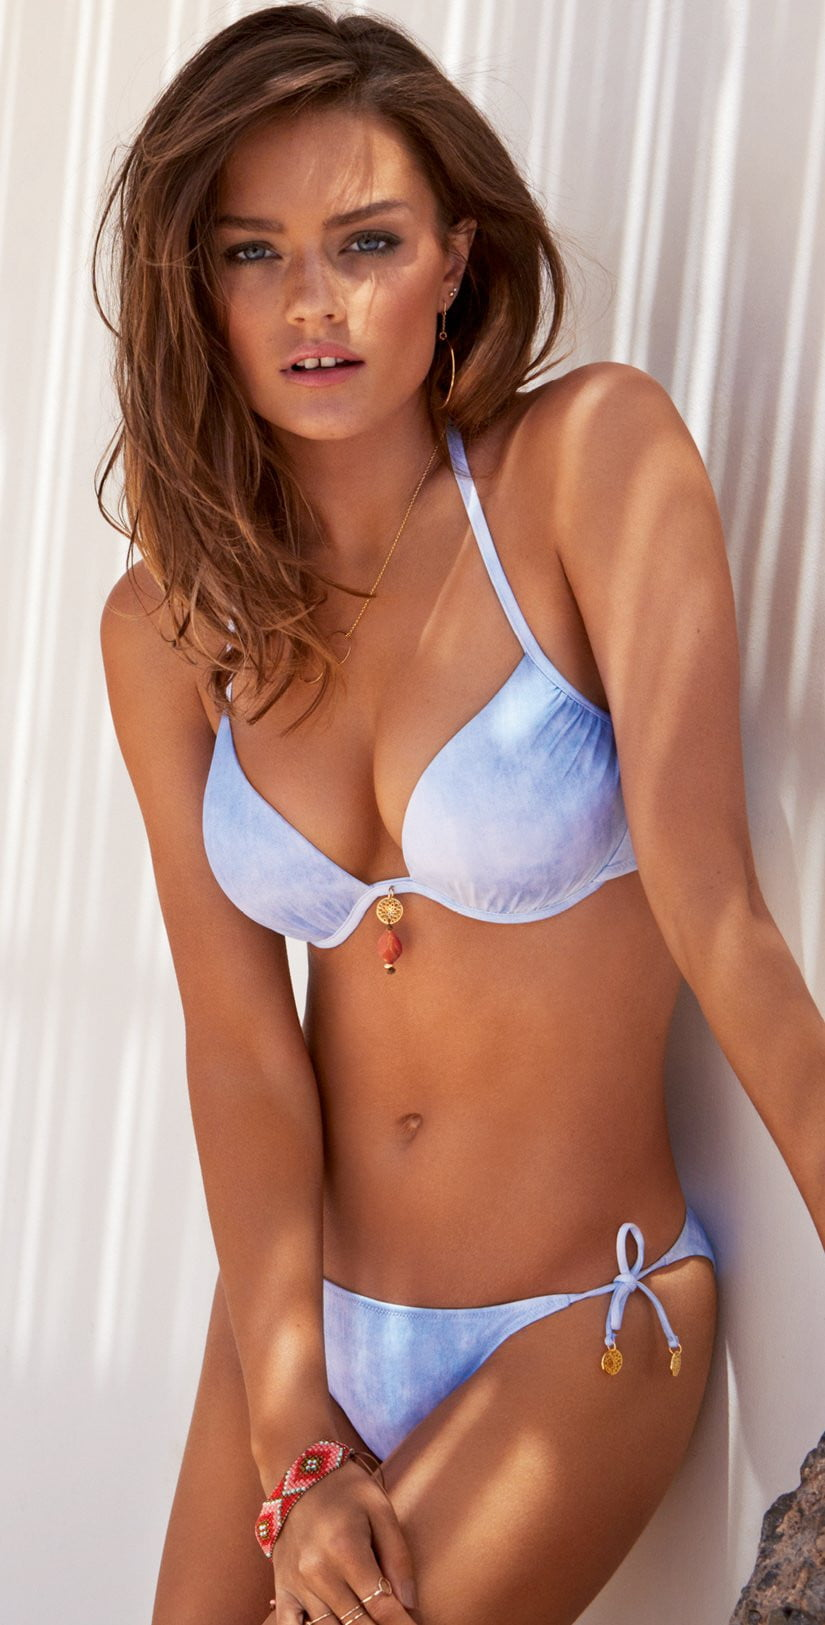 Watercult Offshore Denim Bikini Top 7527-160-341: